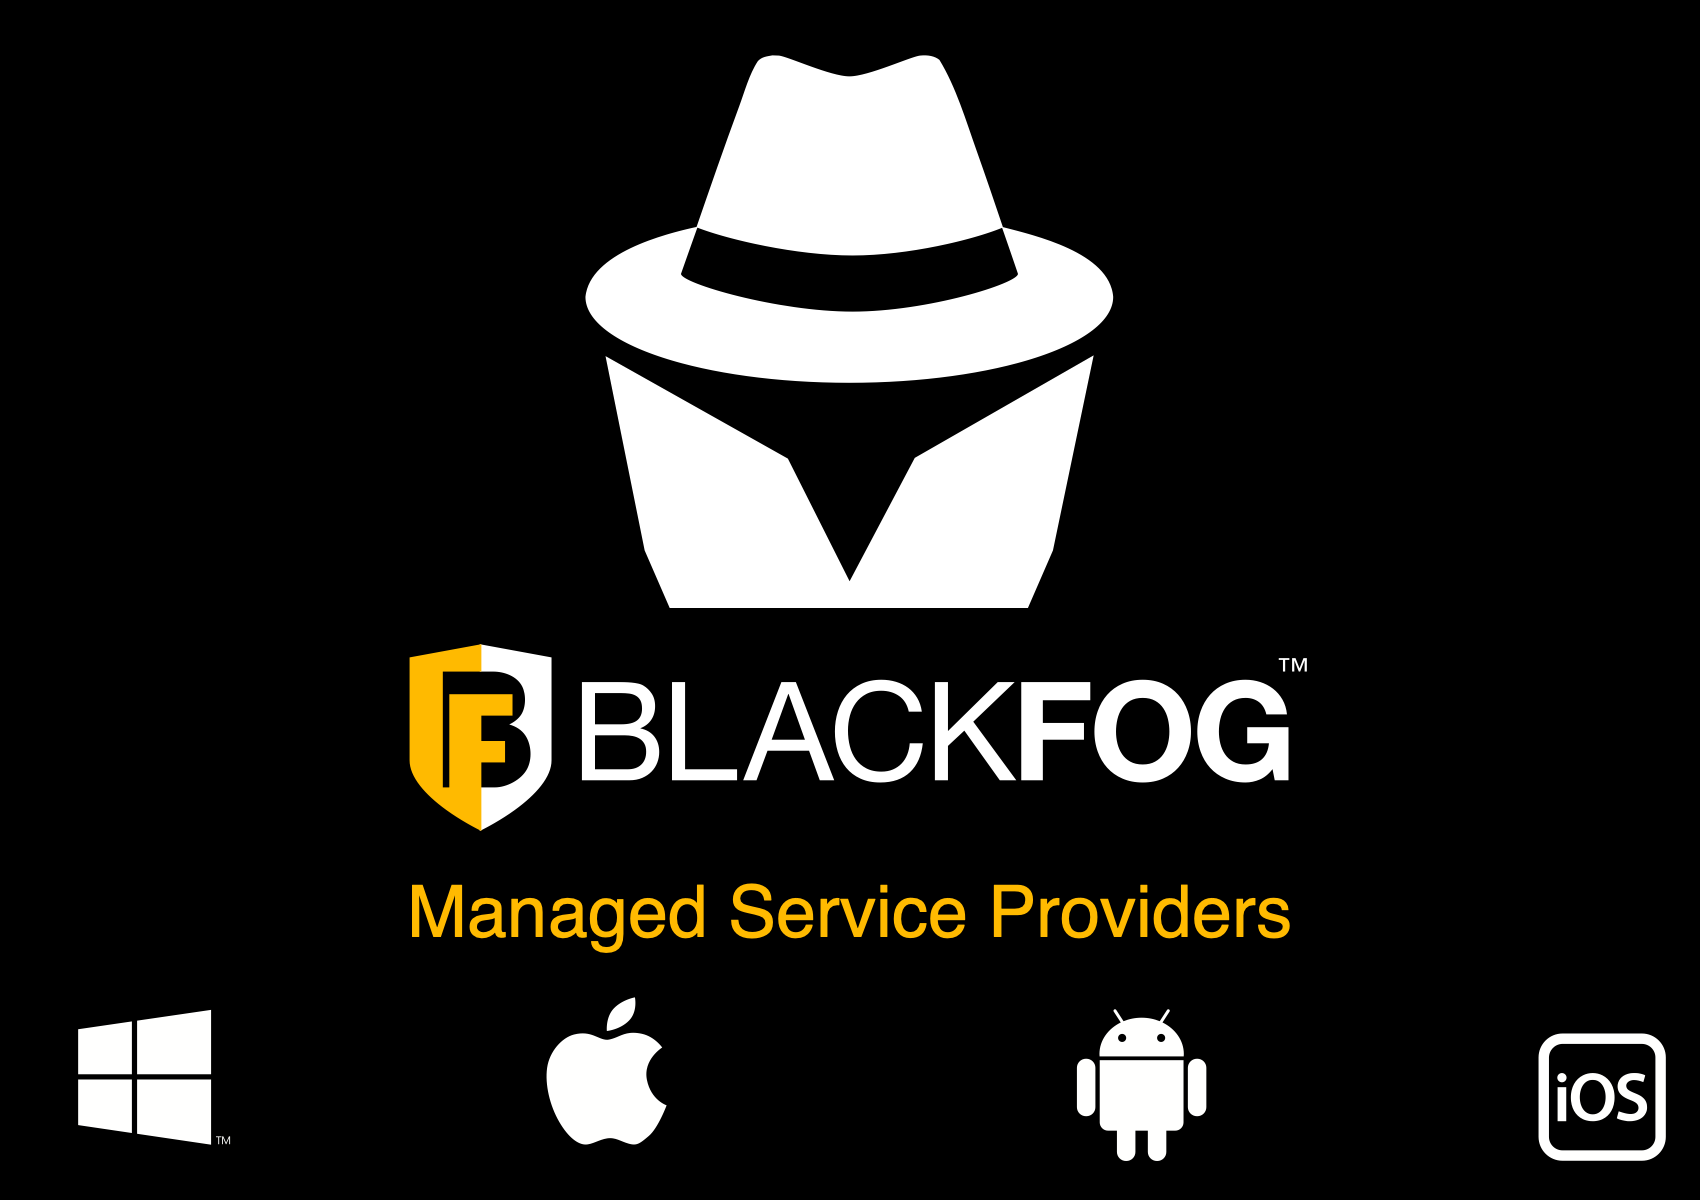 BlackFog Managed Service Providers